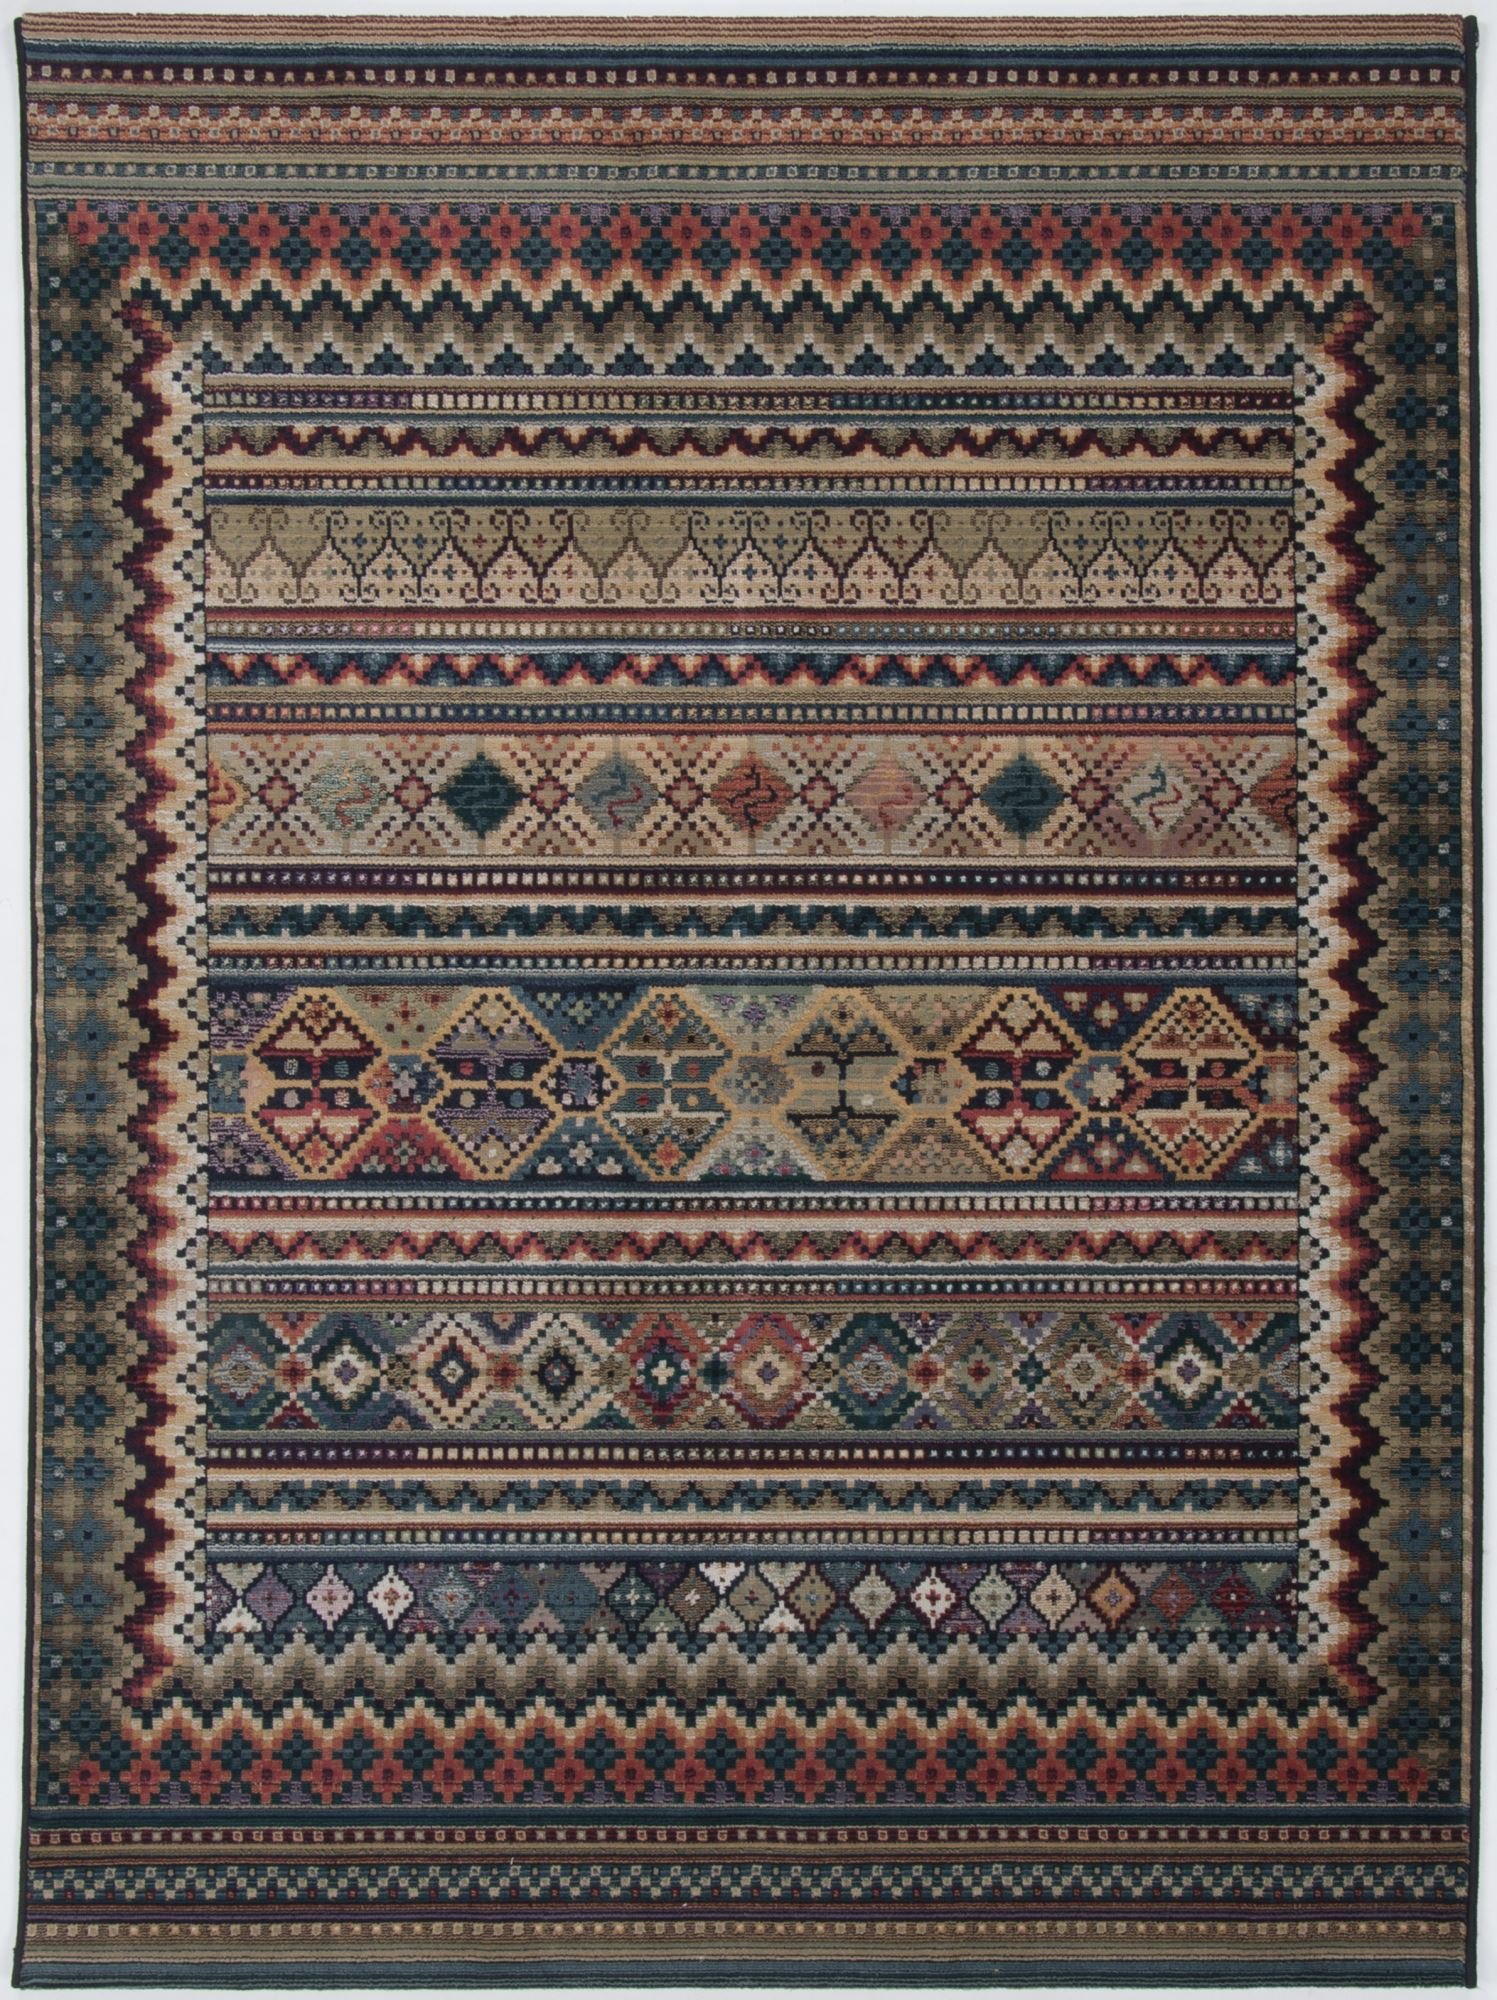 Tapis oriental très durable multicolore 68x135